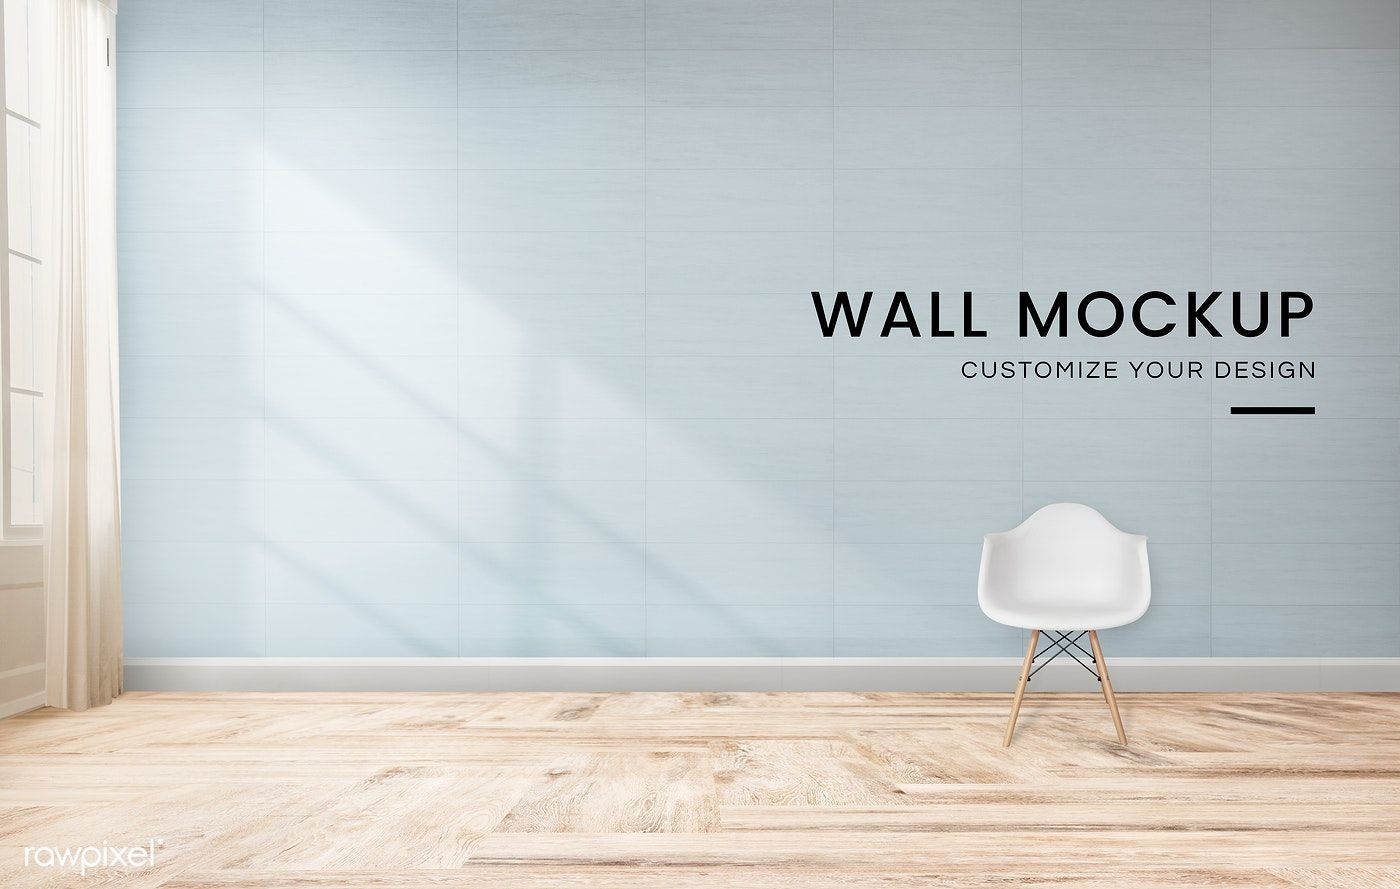 White Chair Against A Blue Wall Mockup Free Image By Rawpixel Com Blue Walls White Chair Blue Rooms